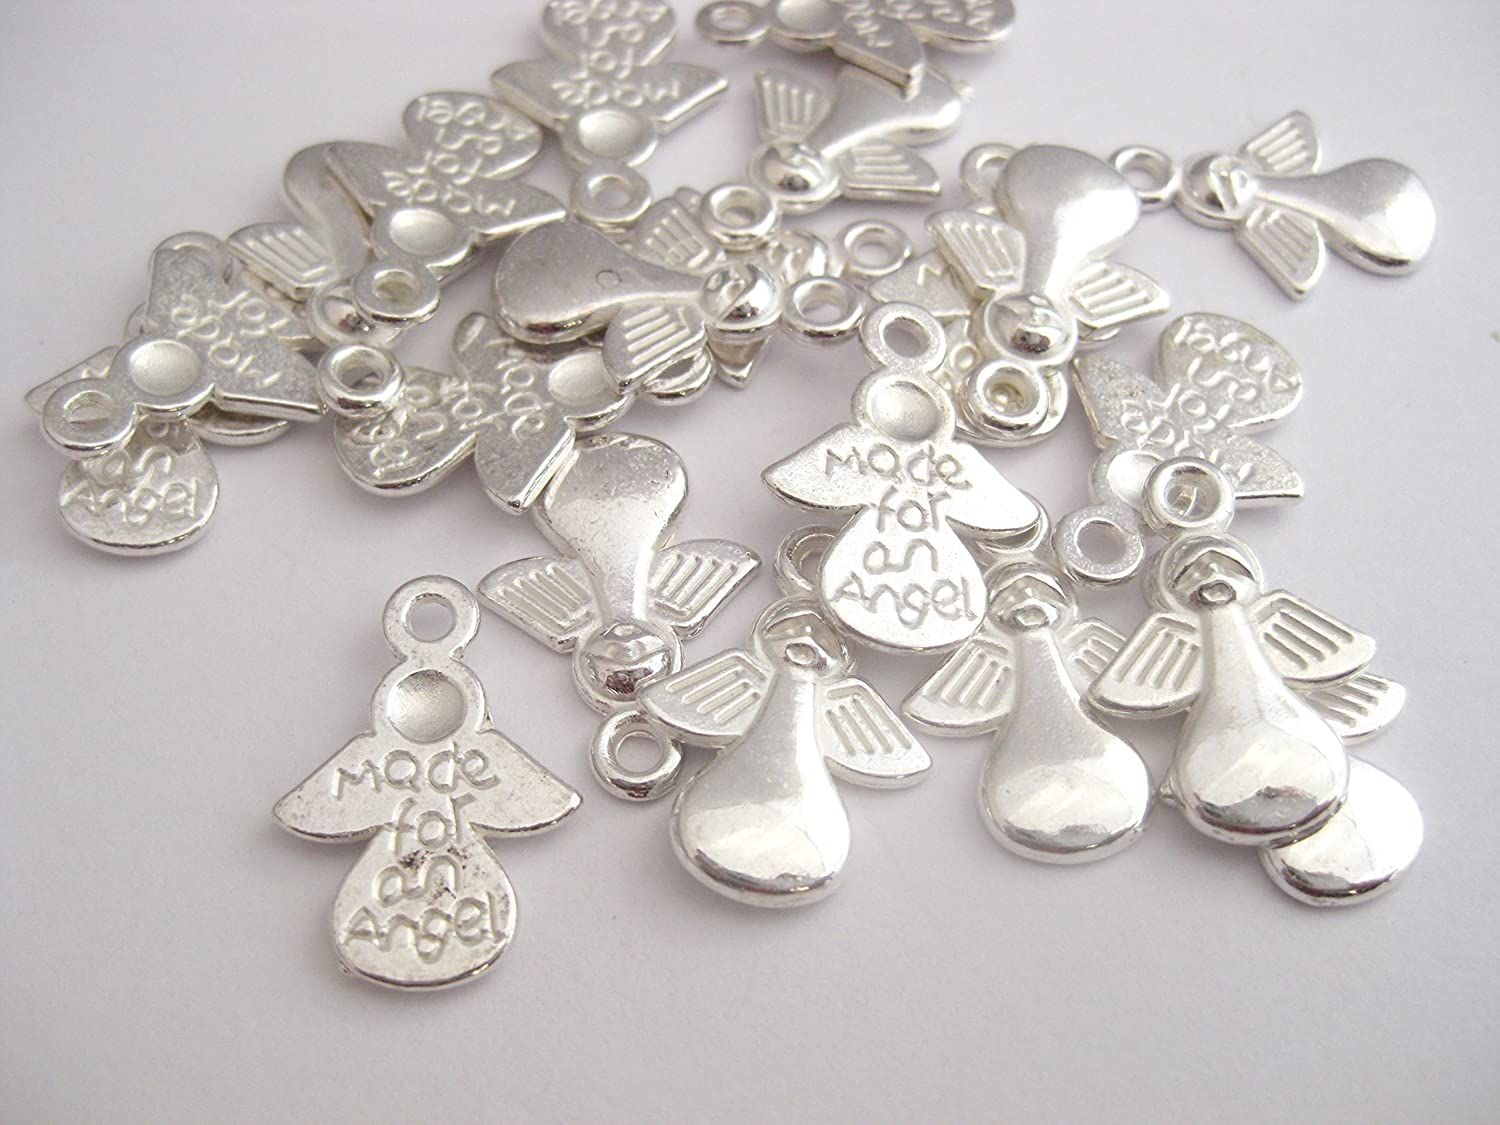 12 Tibetan Silver Angel ' Made for an Angel 'Charms 17.5mm x 13mm. CH001 Enchanted Jewels